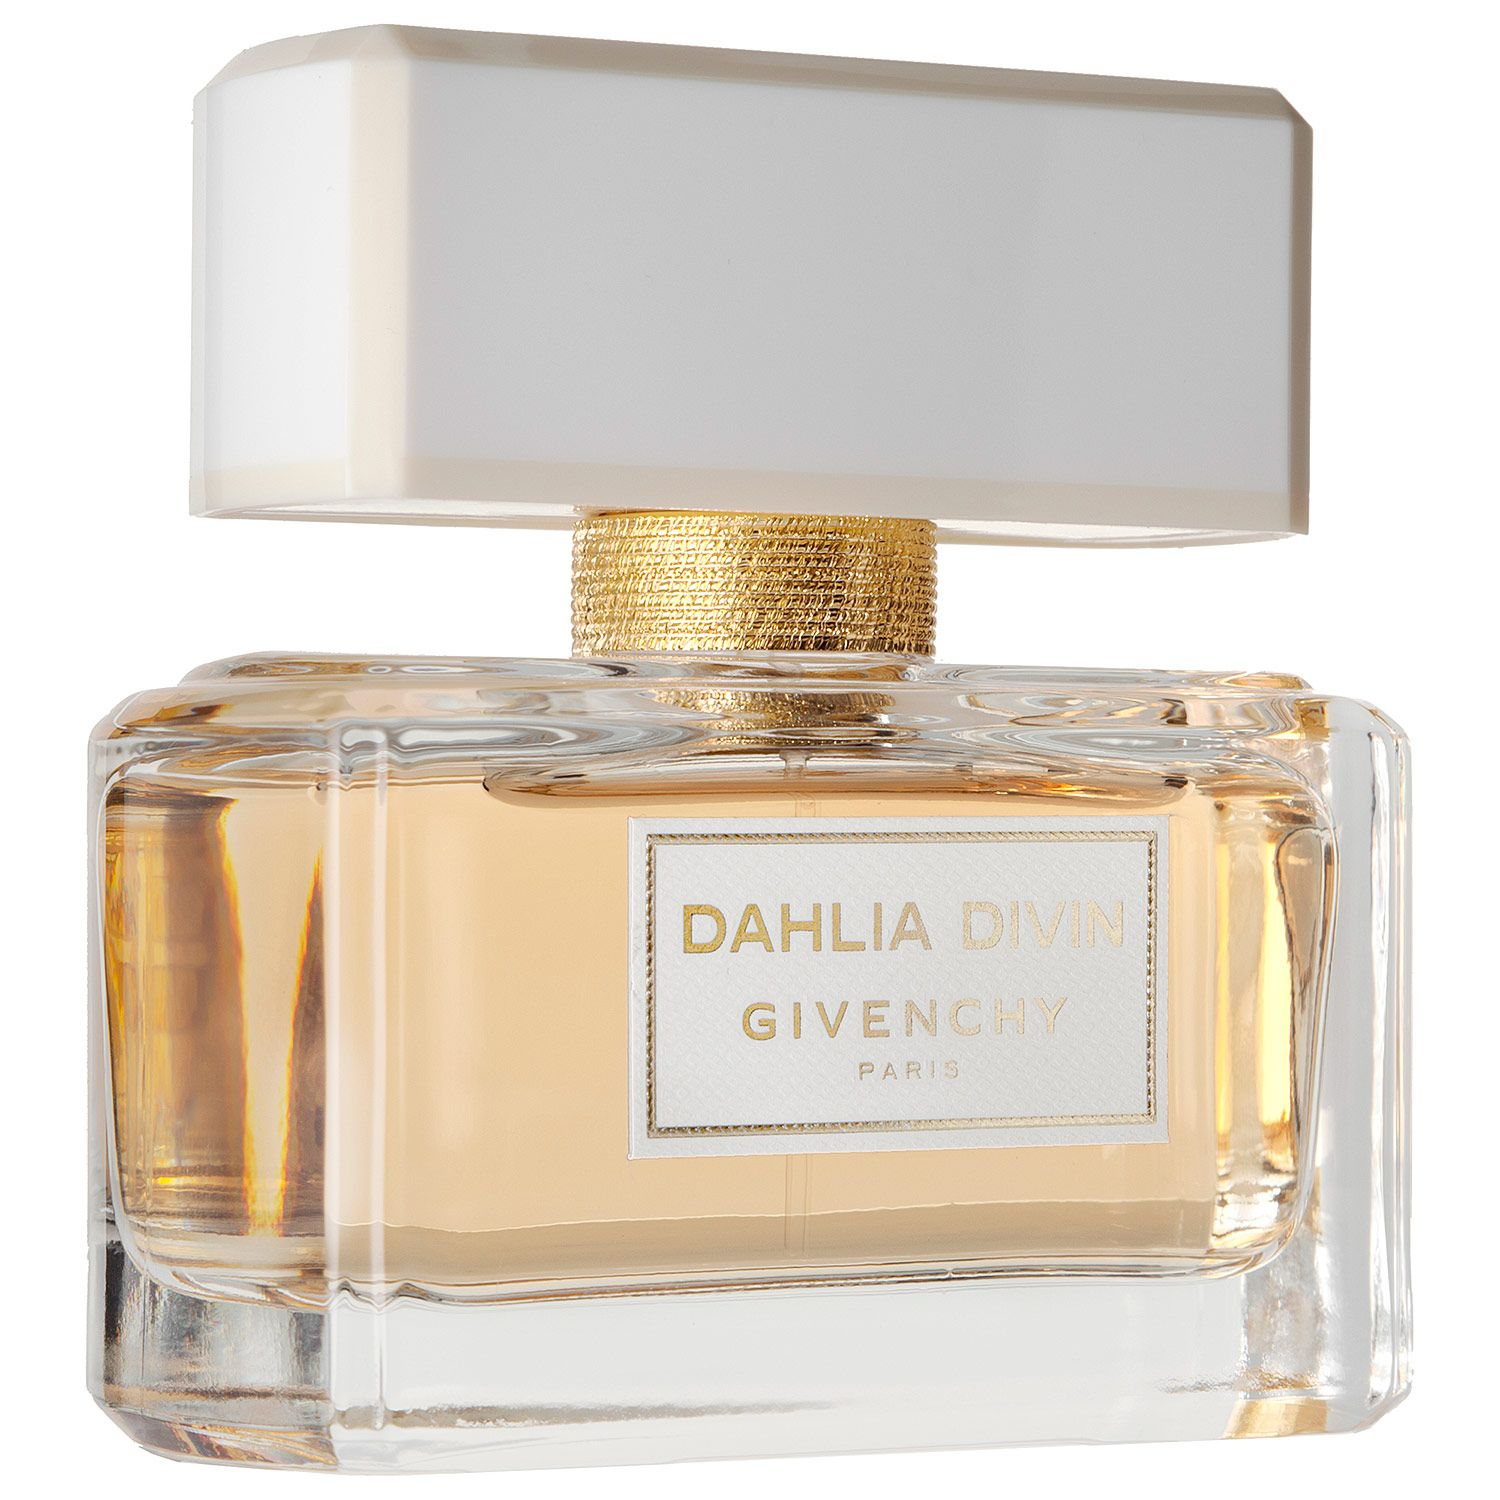 givenchy dahlia divin a timeless and quintessentially woody eau de parfum it enchants with. Black Bedroom Furniture Sets. Home Design Ideas